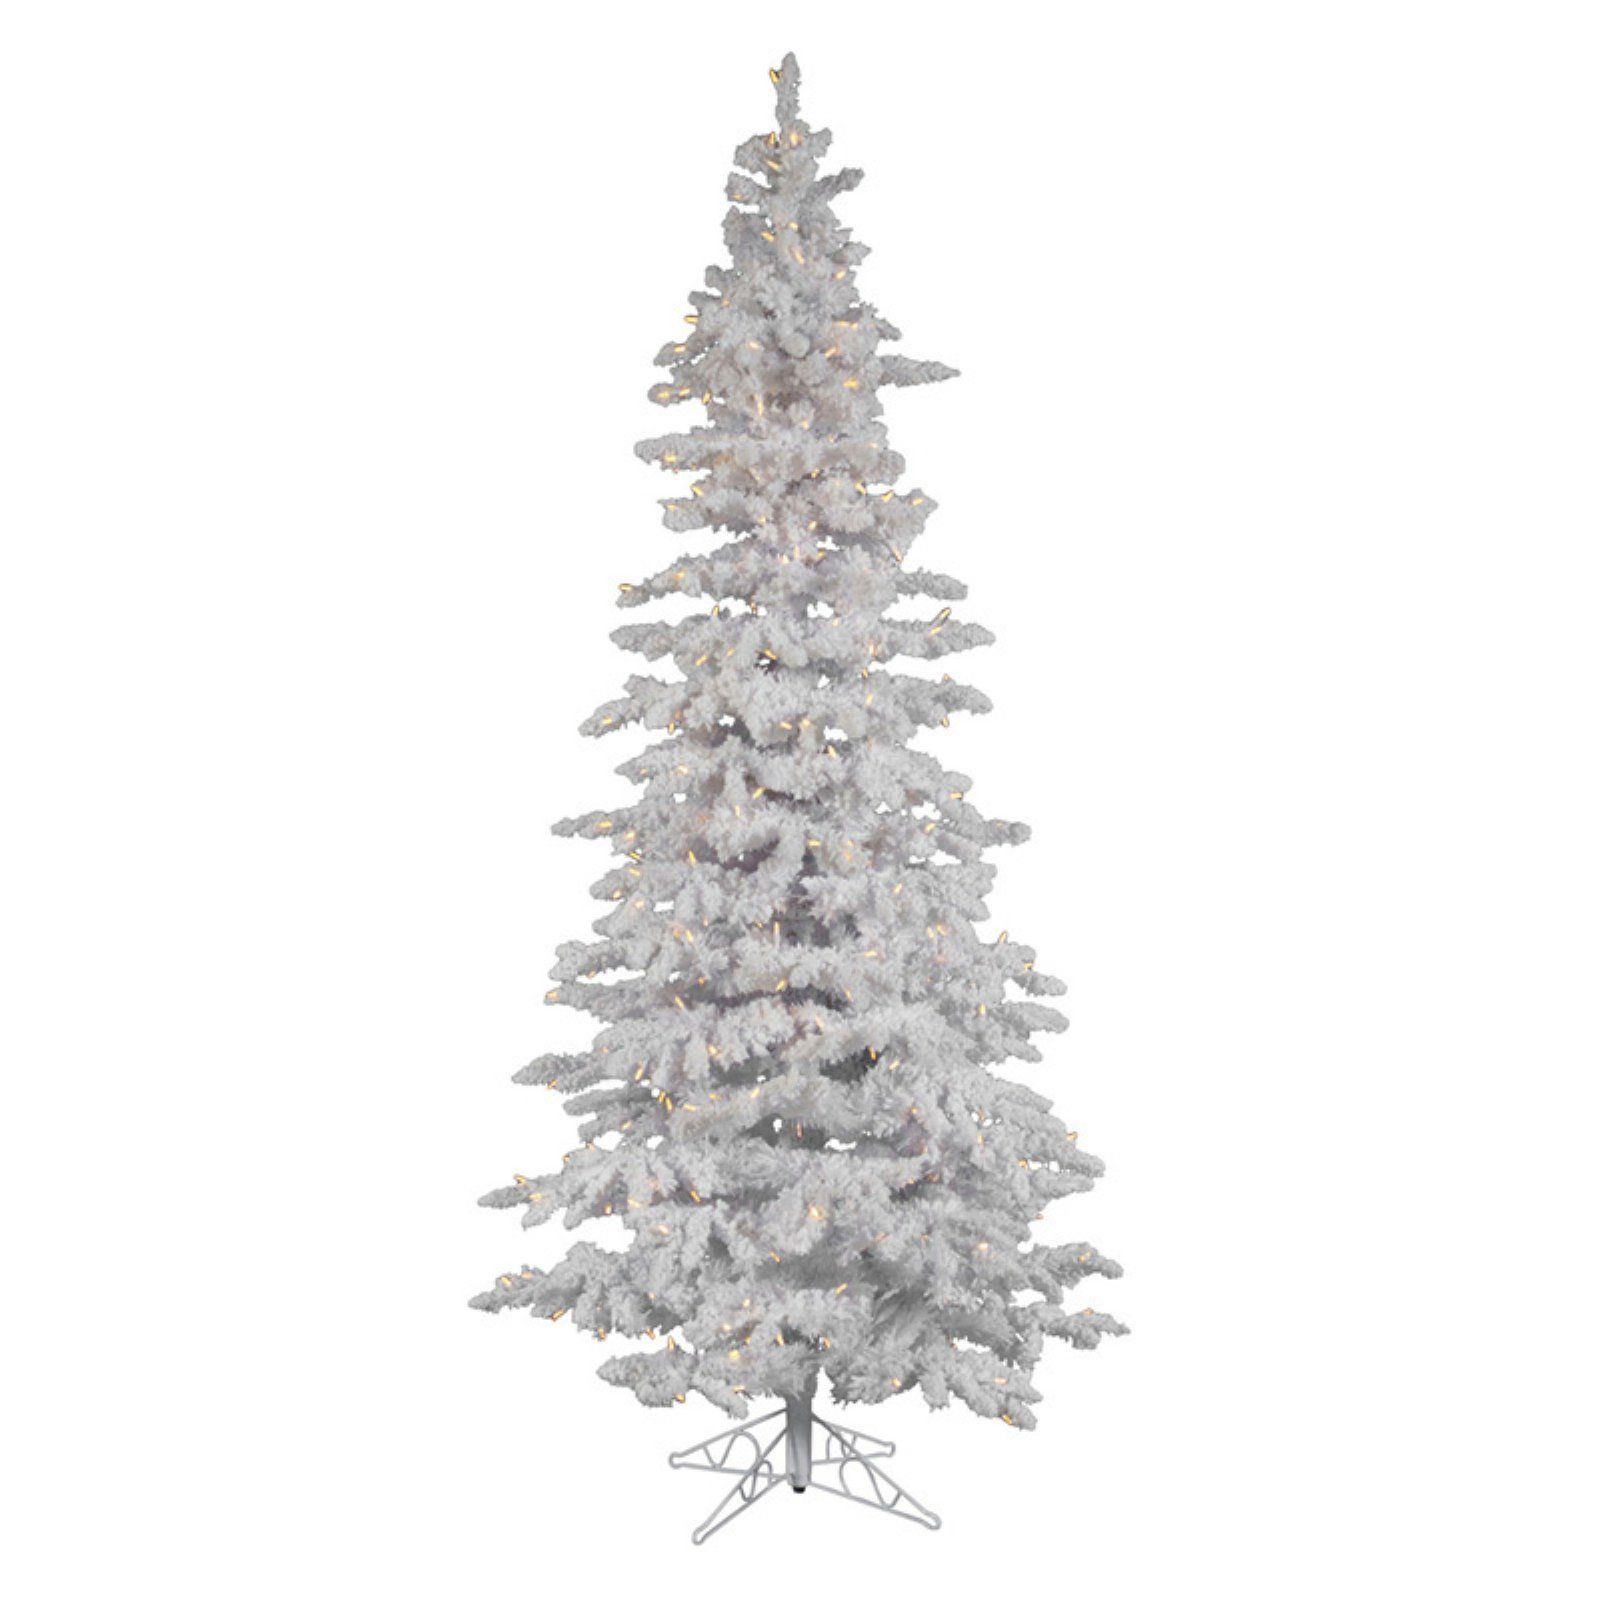 12 Ft Flocked Christmas Tree: Warm White Flocked White Slim Pre-lit LED Christmas